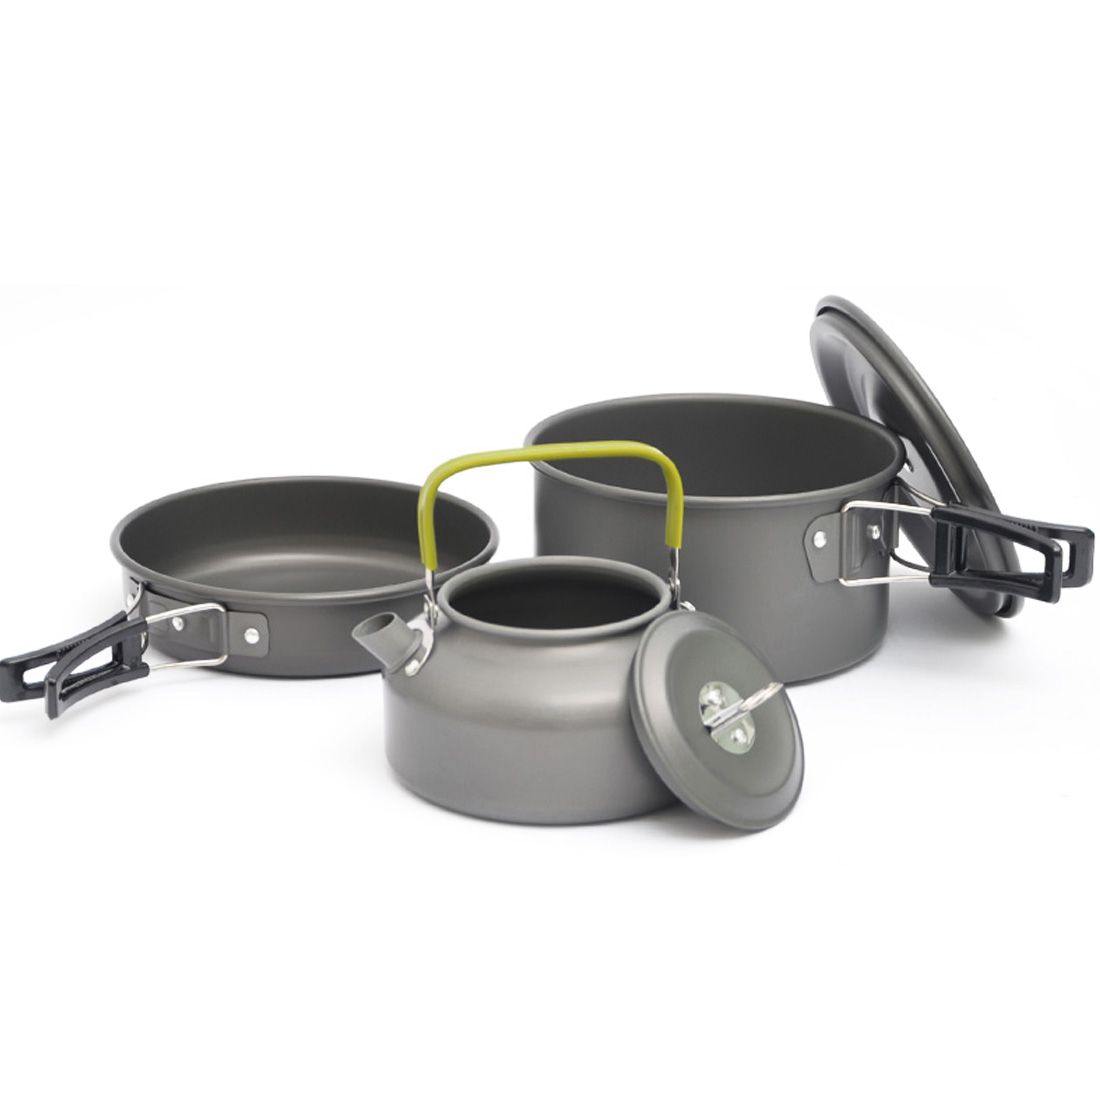 3pcs/Set Portable Camping Pot Pan Kettle Set Aluminum Alloy Outdoor Tableware Cookware Teapot Cooking Tool for Picnic BBQ цены